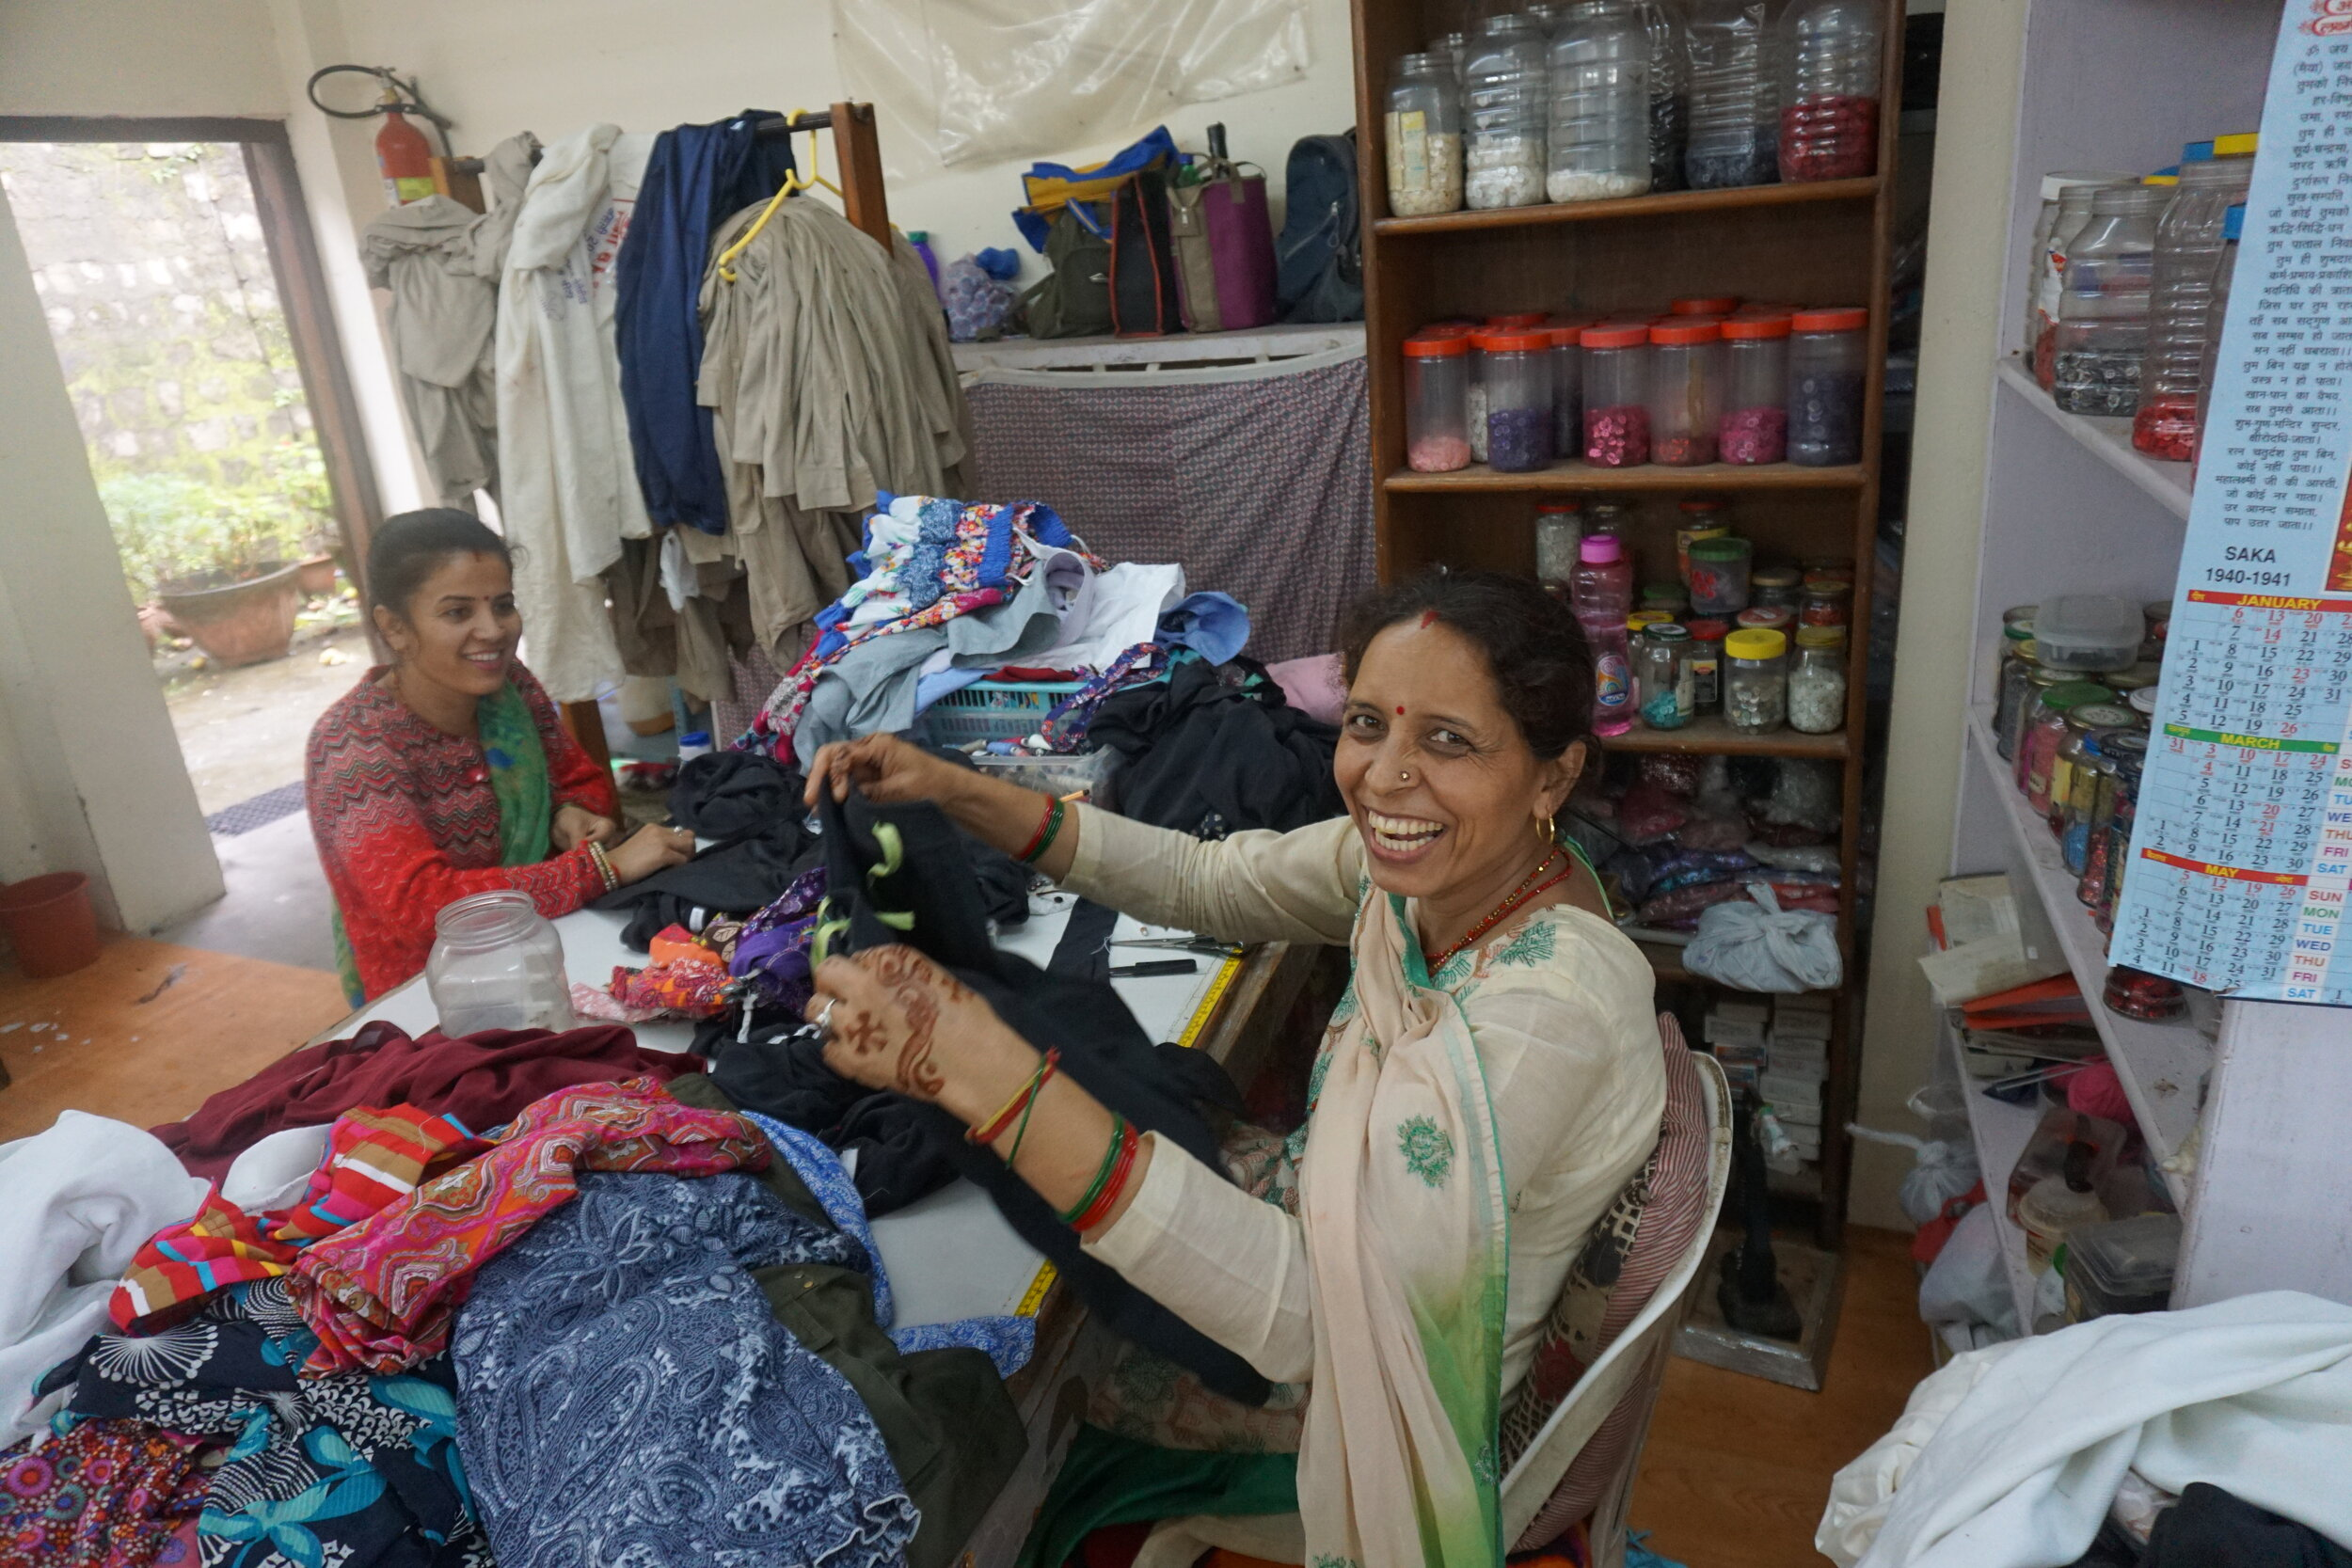 Sushma and Sheetal laughed at me for taking so many pictures while they stitched the tags onto a pair of SheFly pants.